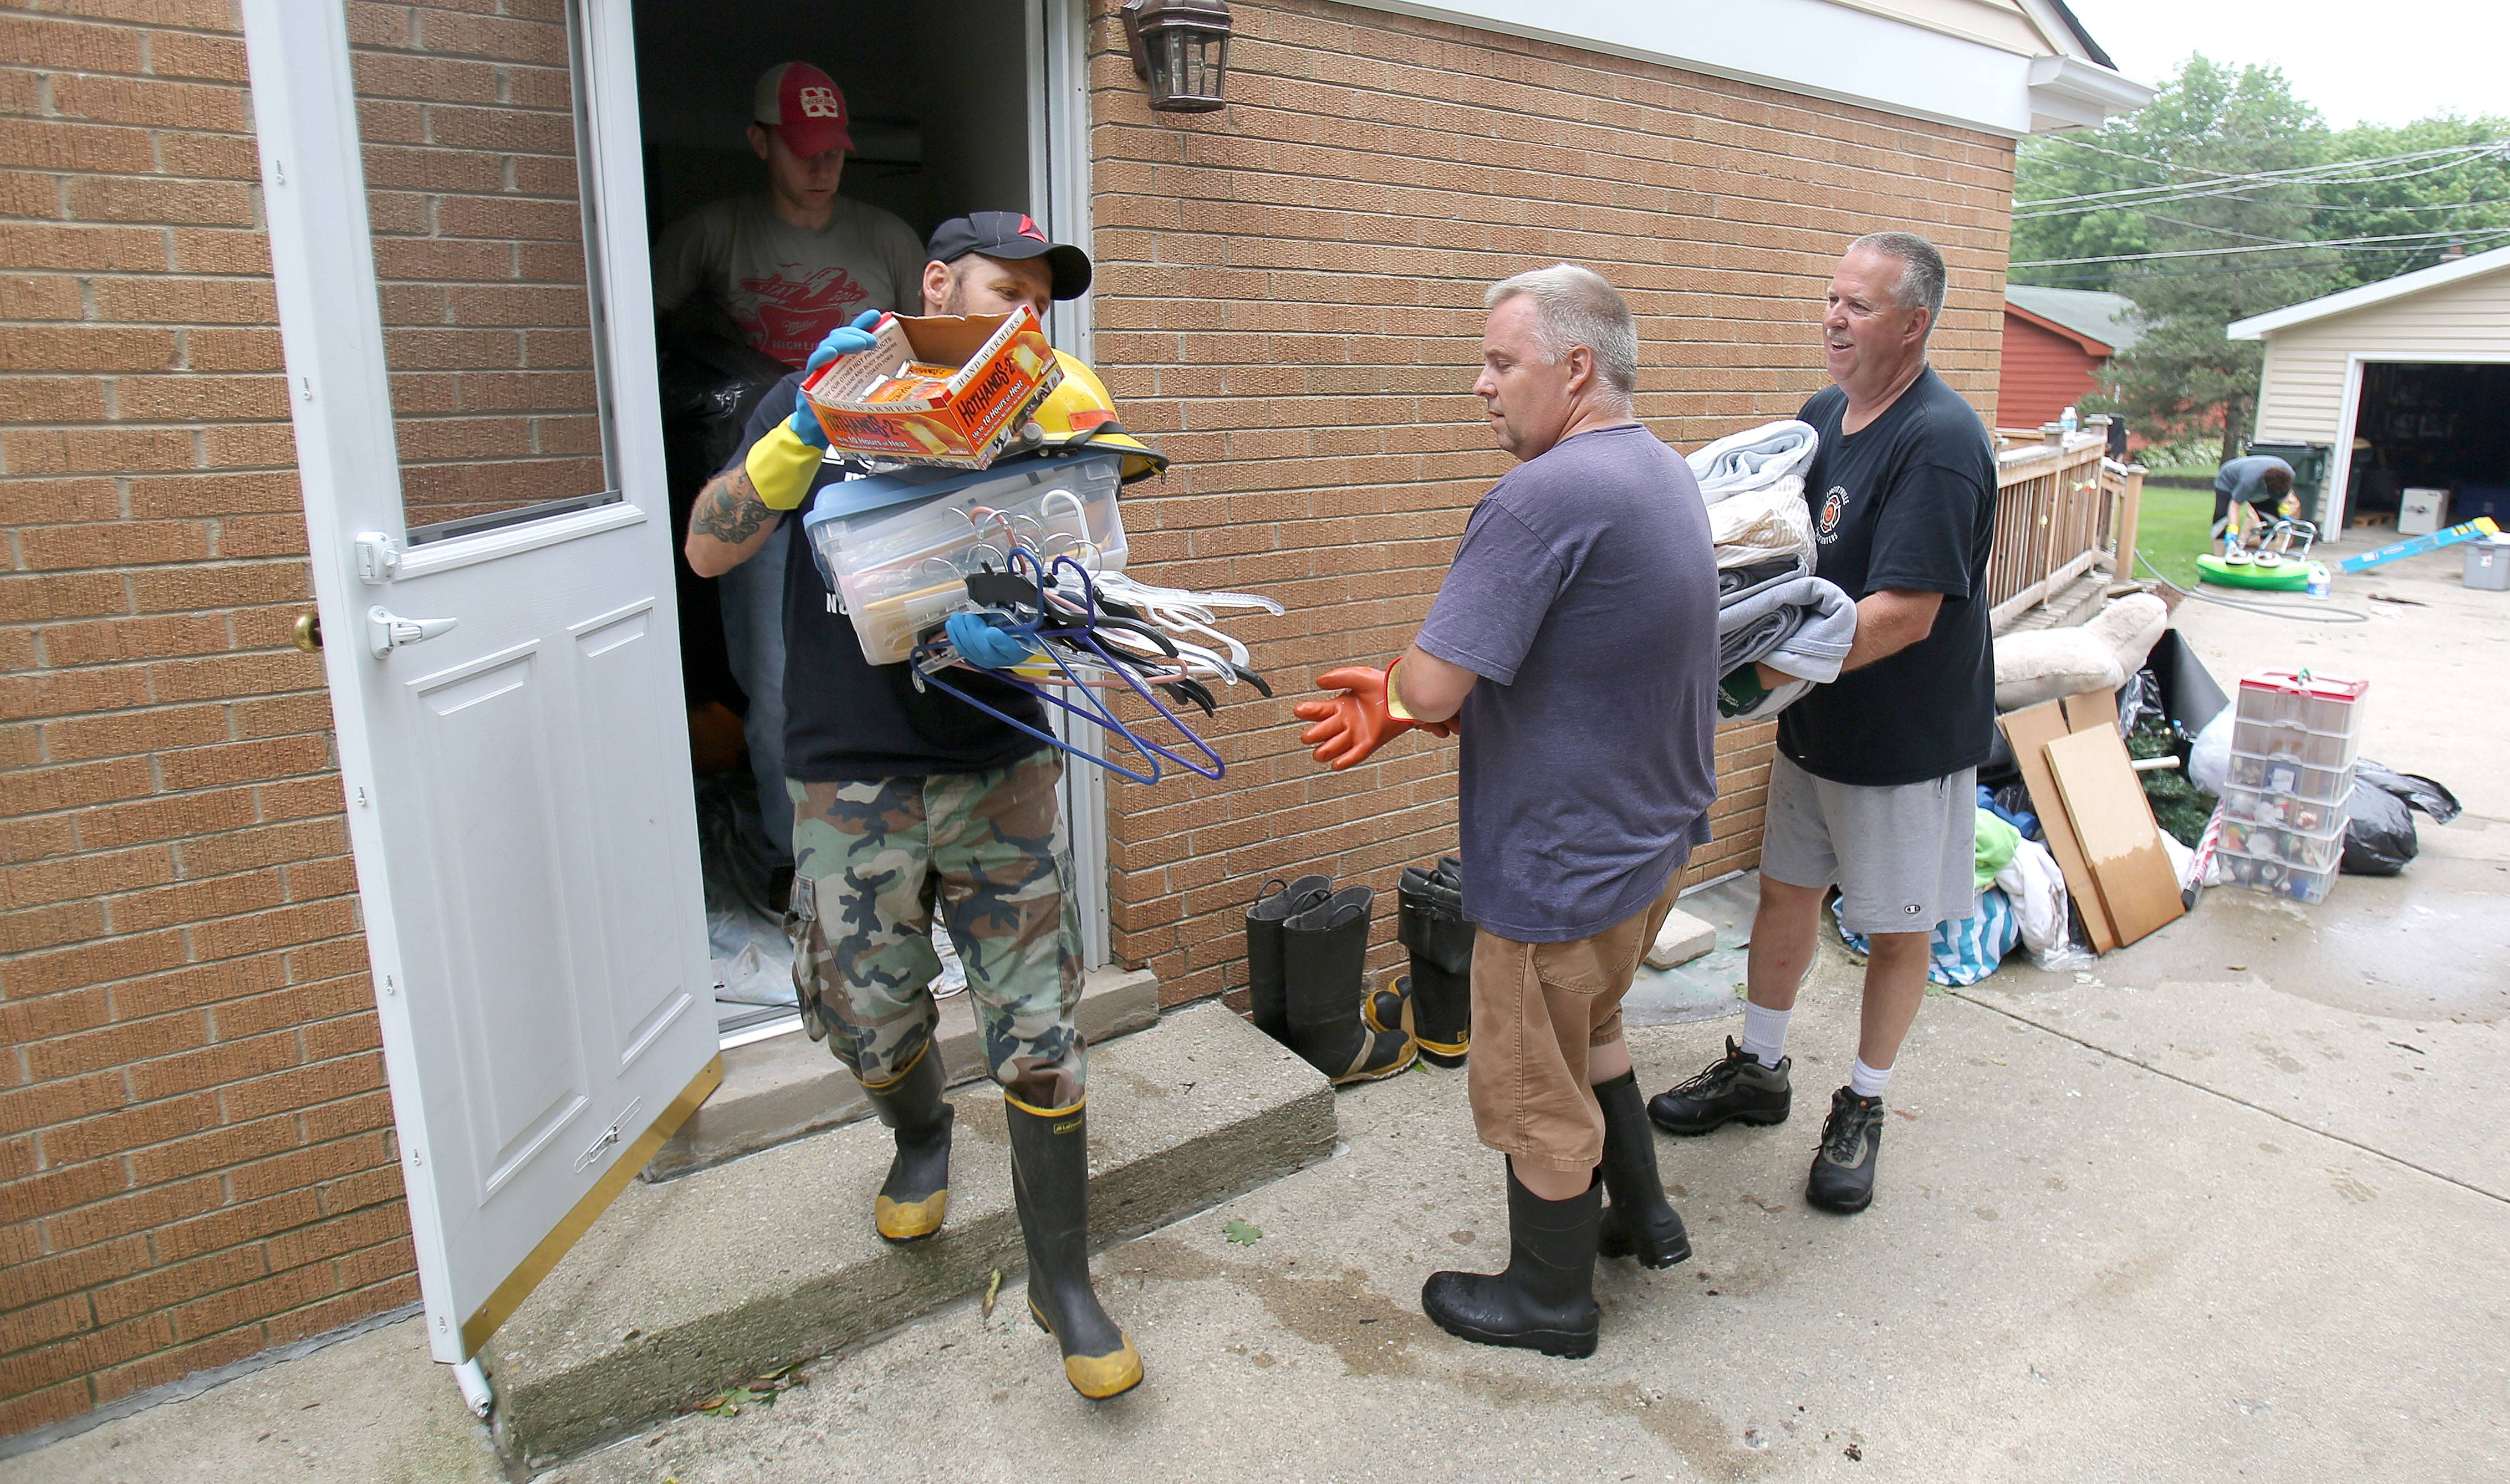 Steve Lundy/slundy@dailyherald.comLibertyville residents help a neighbor clean up after Wednesday's flooding.